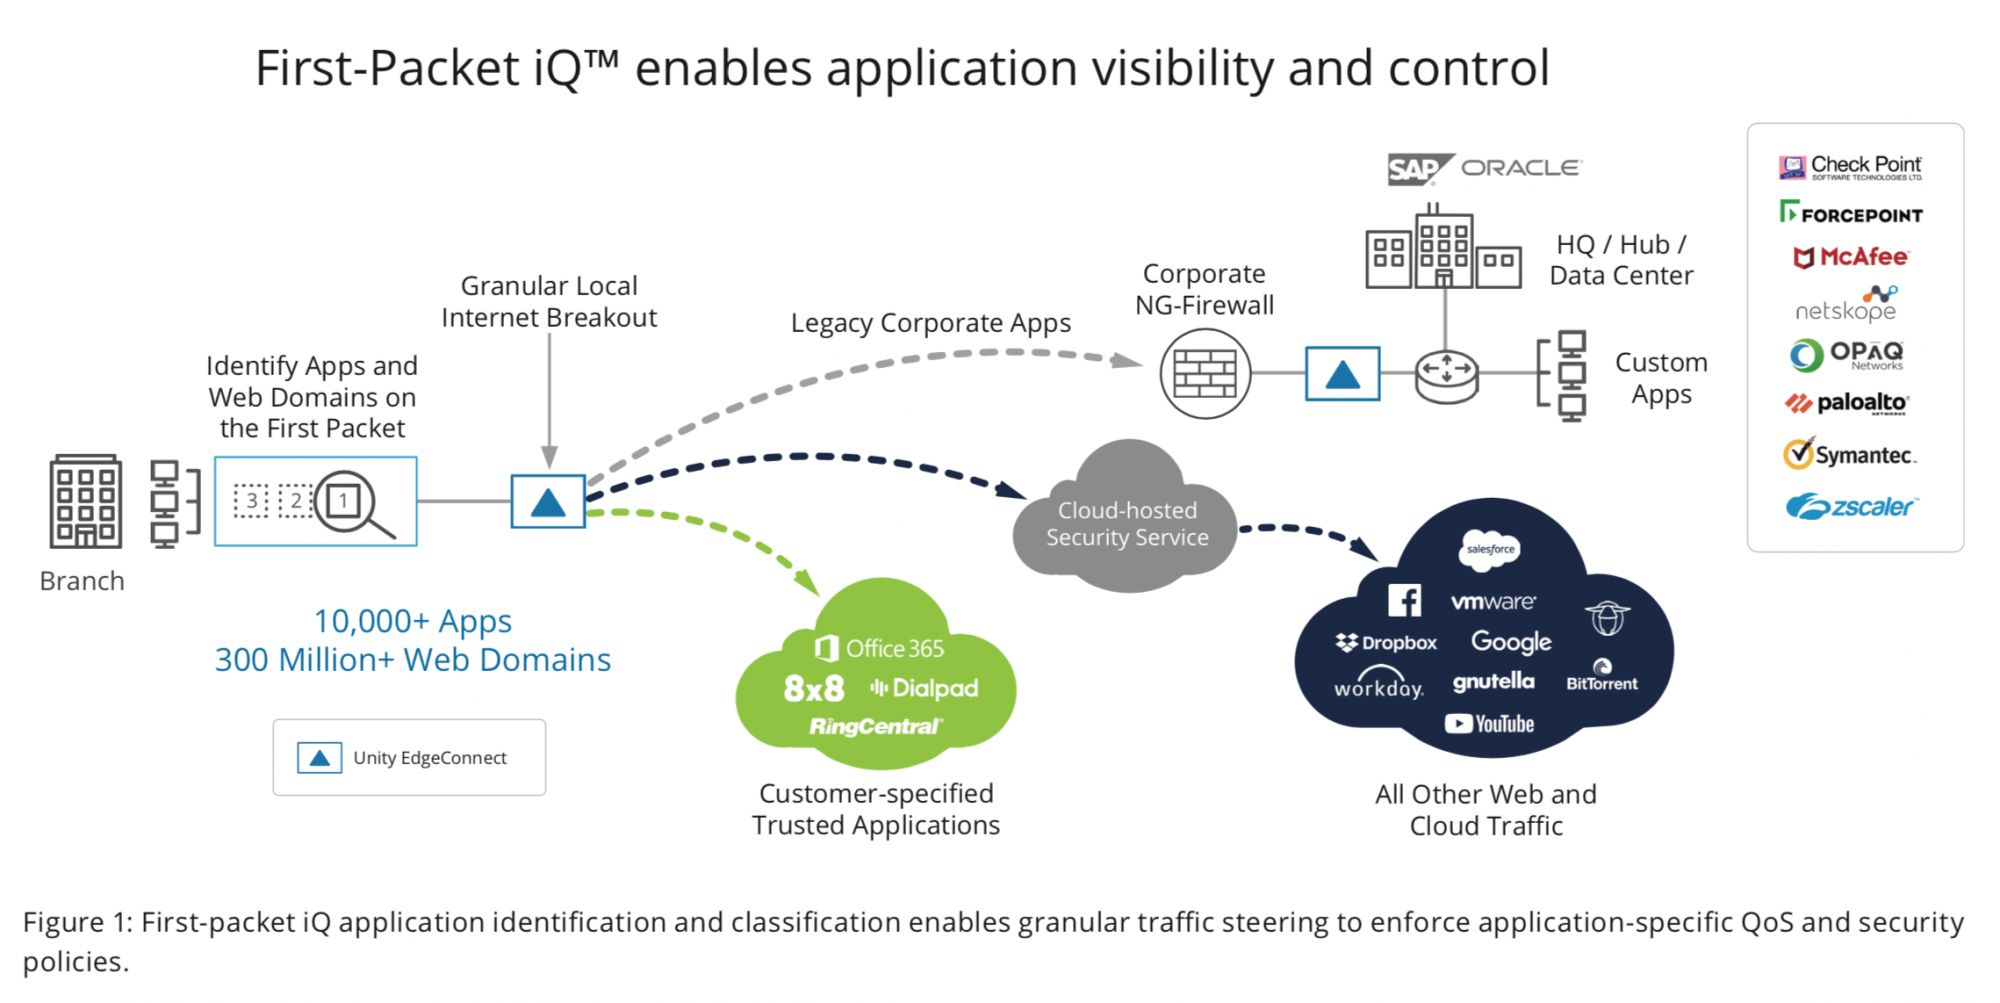 Figure 1: First-packet iQ application identification and classification enables granular traffic steering to enforce application-specific QoS and security policies.